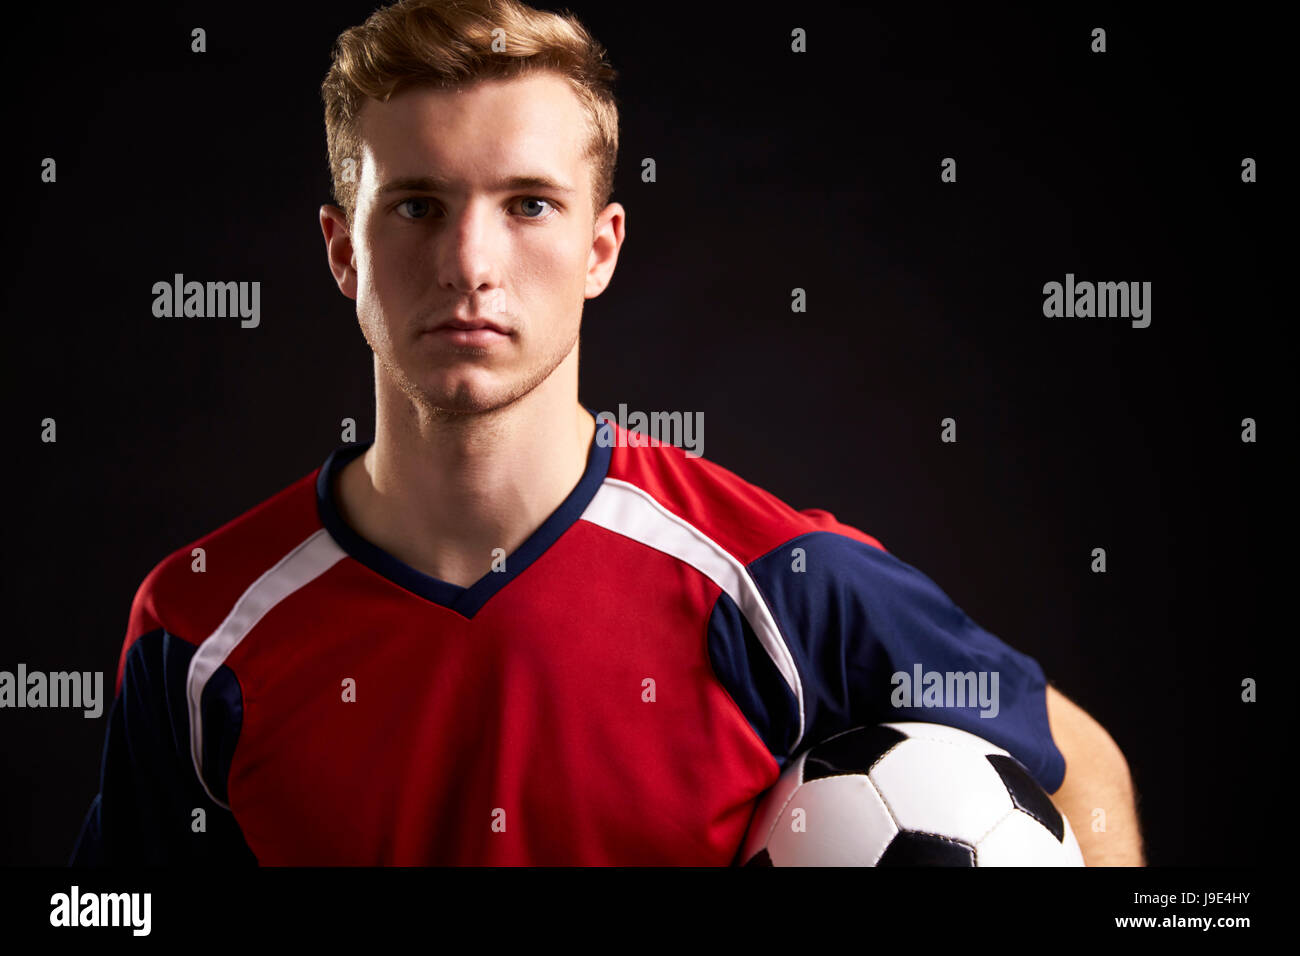 Portrait Of Professional Soccer Player With Ball In Studio - Stock Image